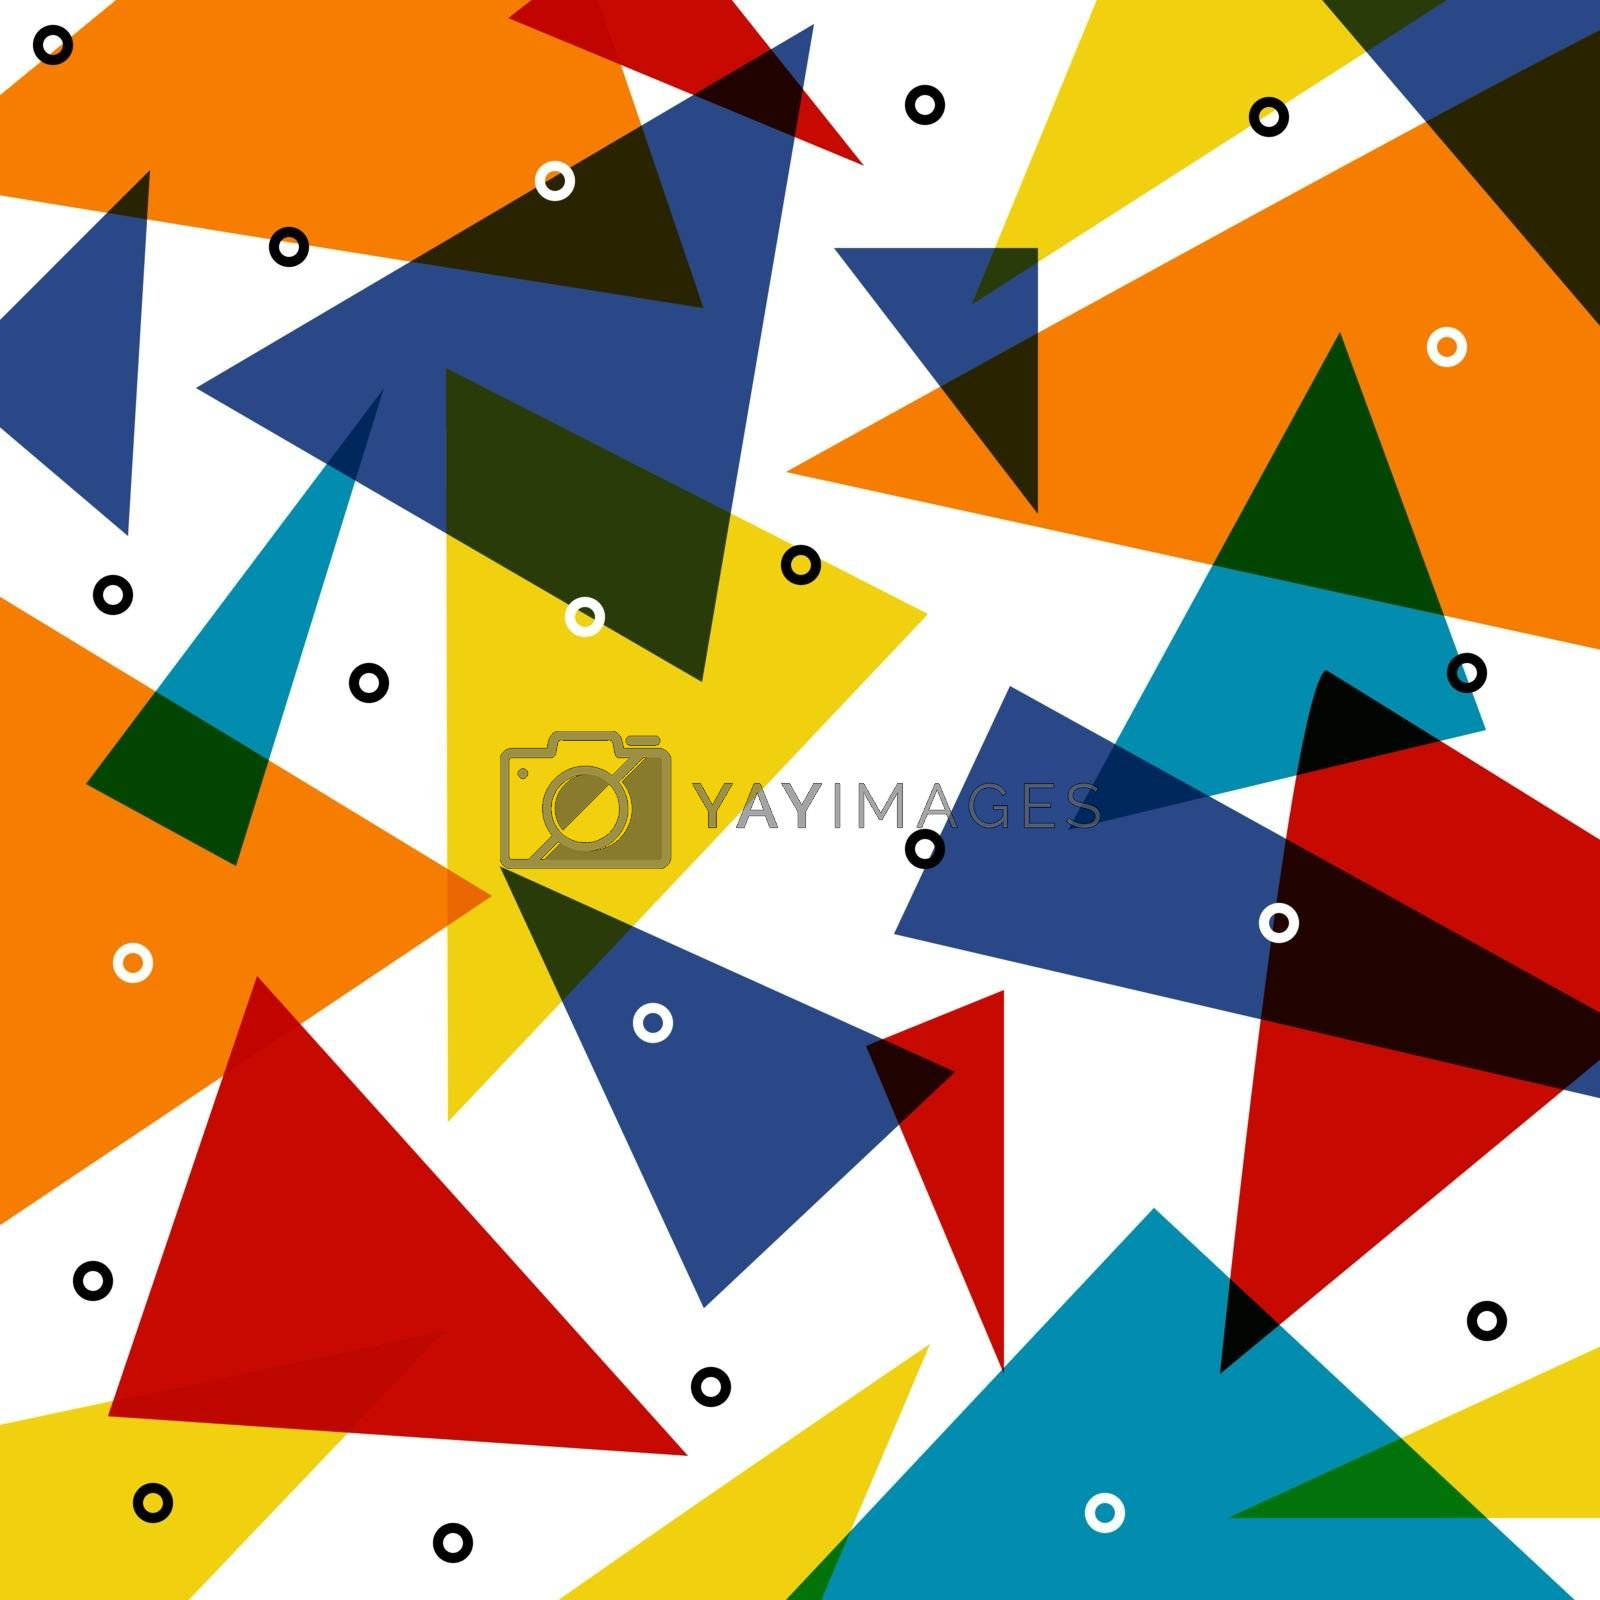 Abstract colorful triangle pattern overlap with circle elements on white background. Vector illustration